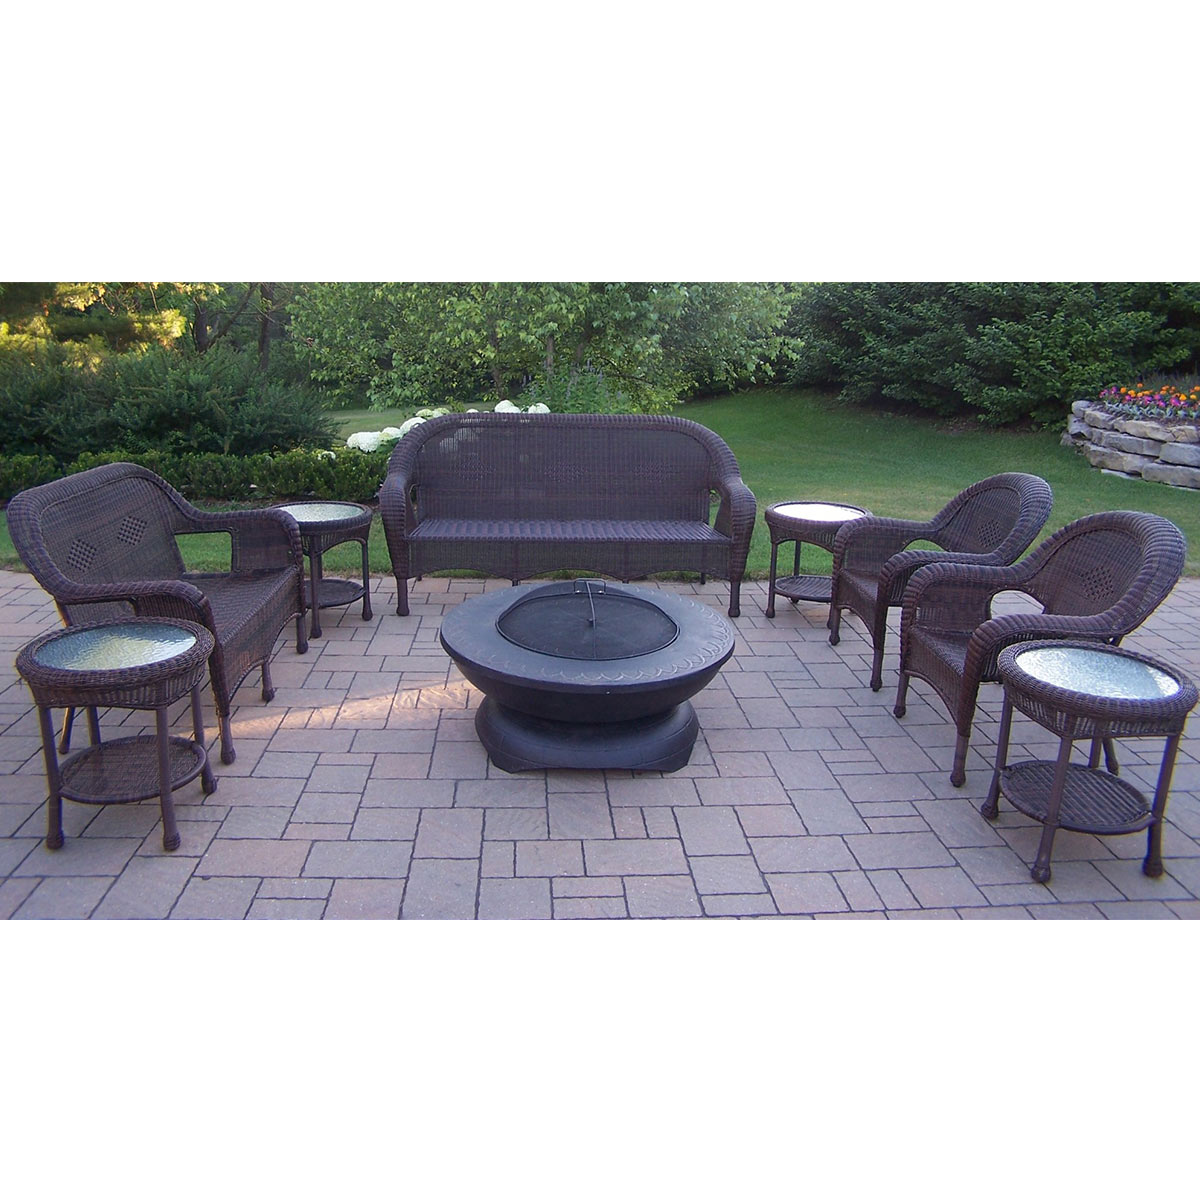 Oakland Living Resin Wicker 9 Piece Patio Seating Set with